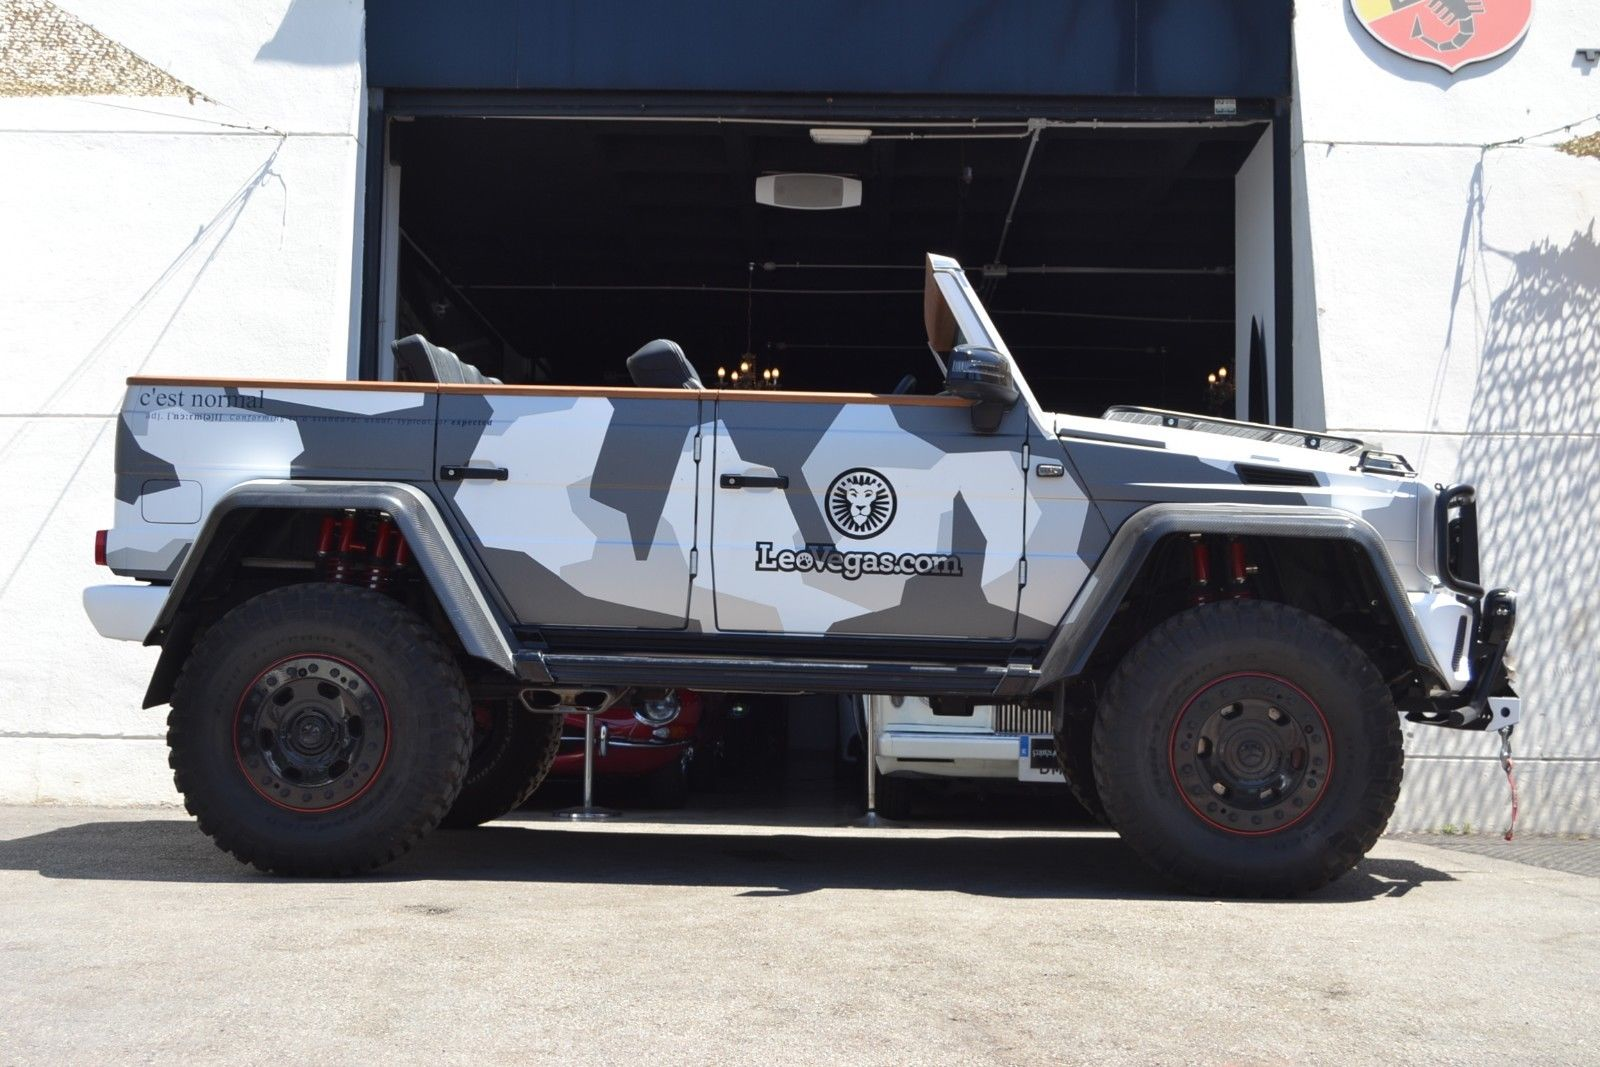 Jon Olsson G500 4x4 for sale 5